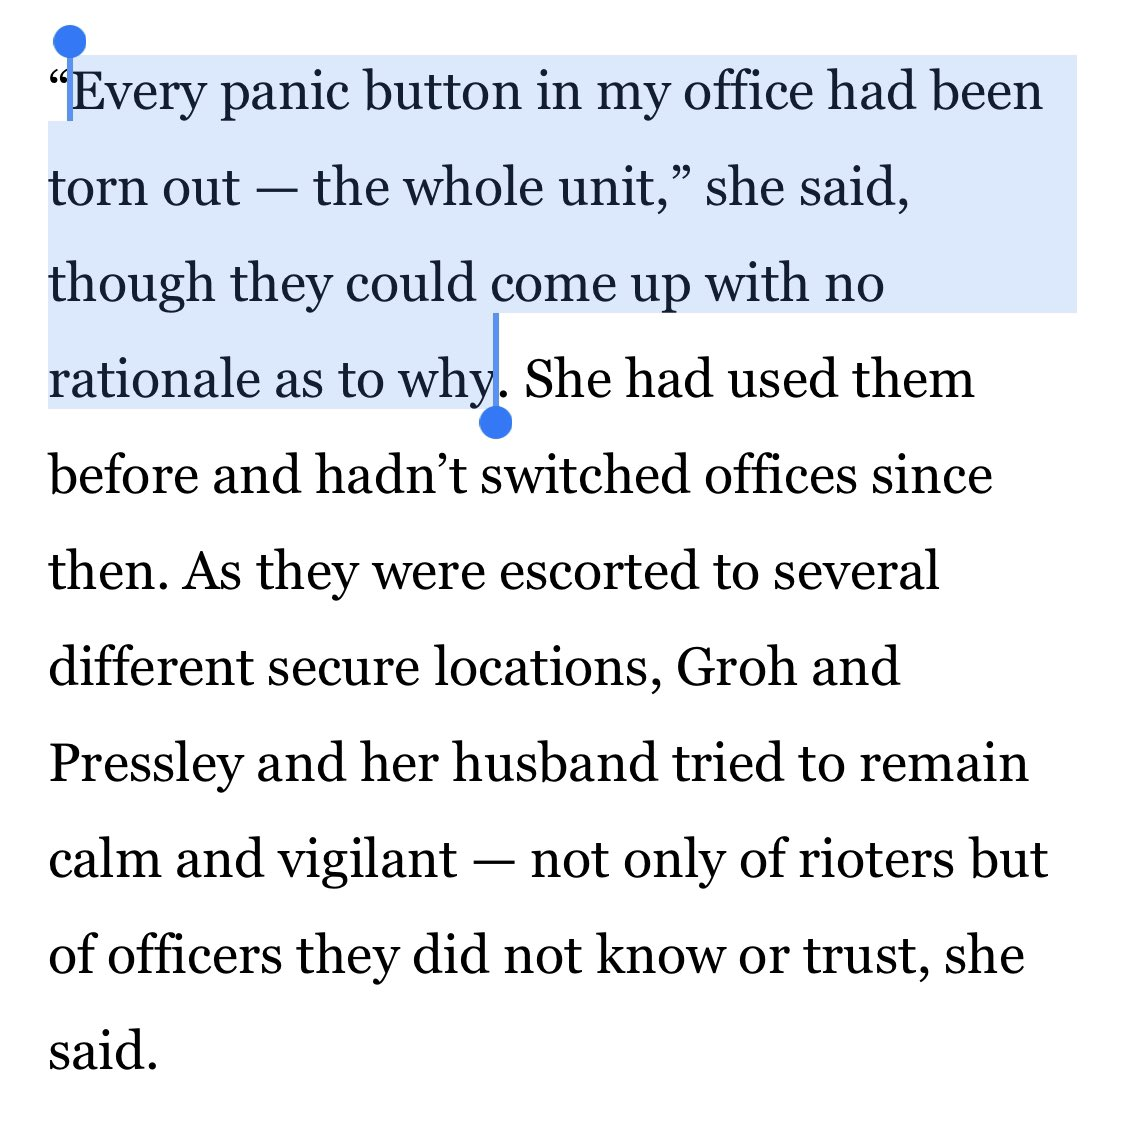 """According to Ayanna Pressley's chief of staff Sarah Groh, the panic buttons in the Congresswoman's office were all """"torn out—the whole unit.""""  They don't know why or who did it."""